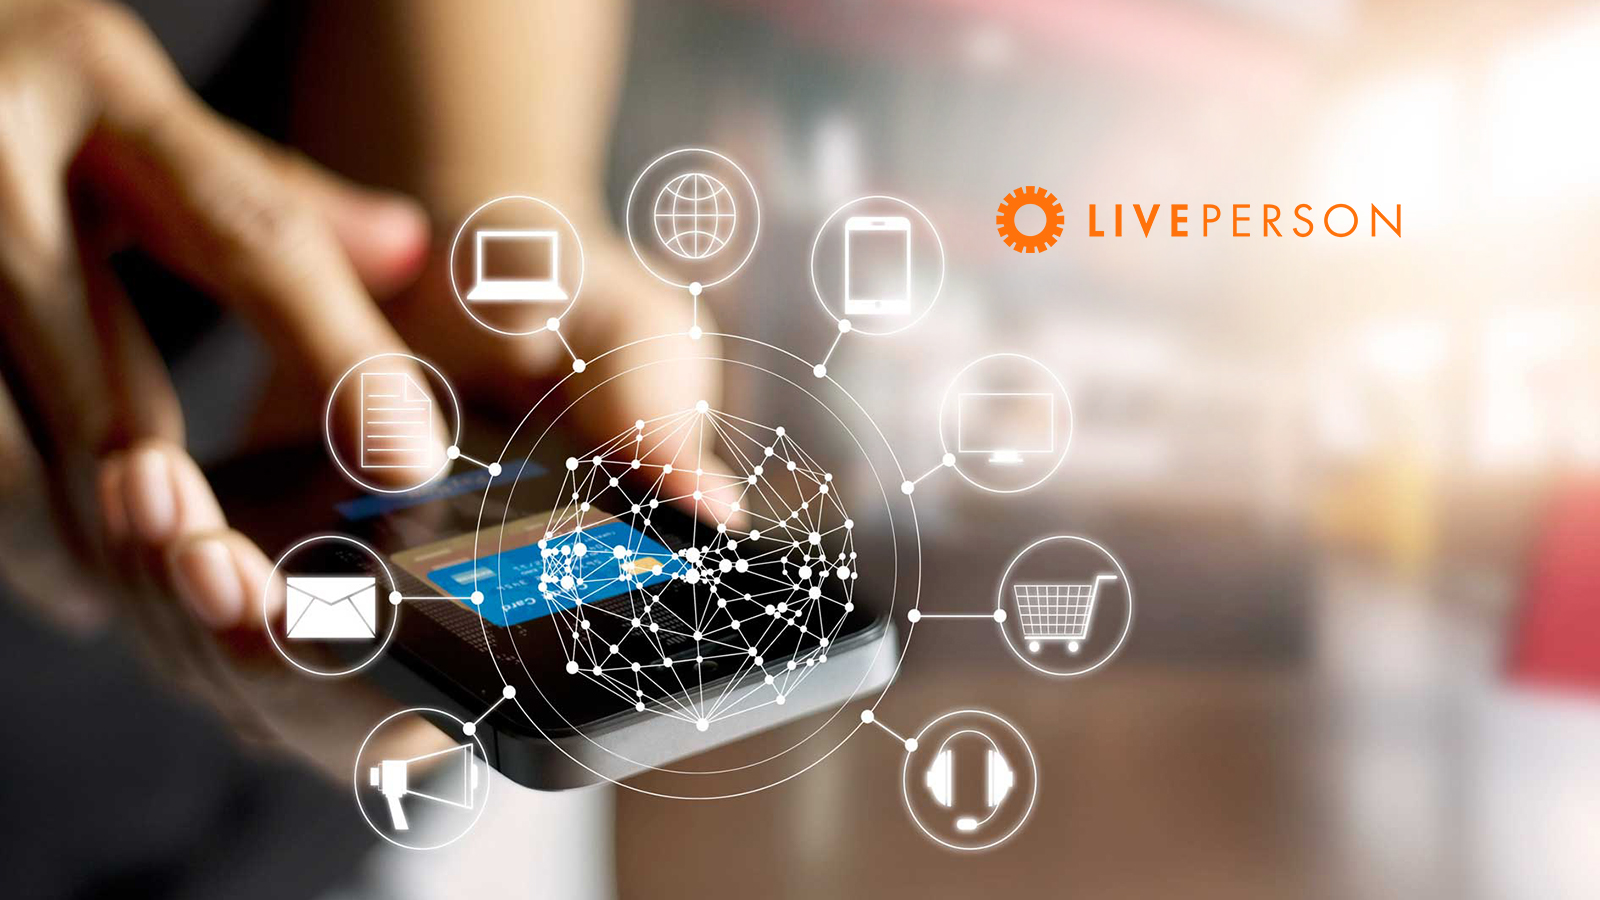 Adlingo liveperson and adlingo enable brands to have one-to-one